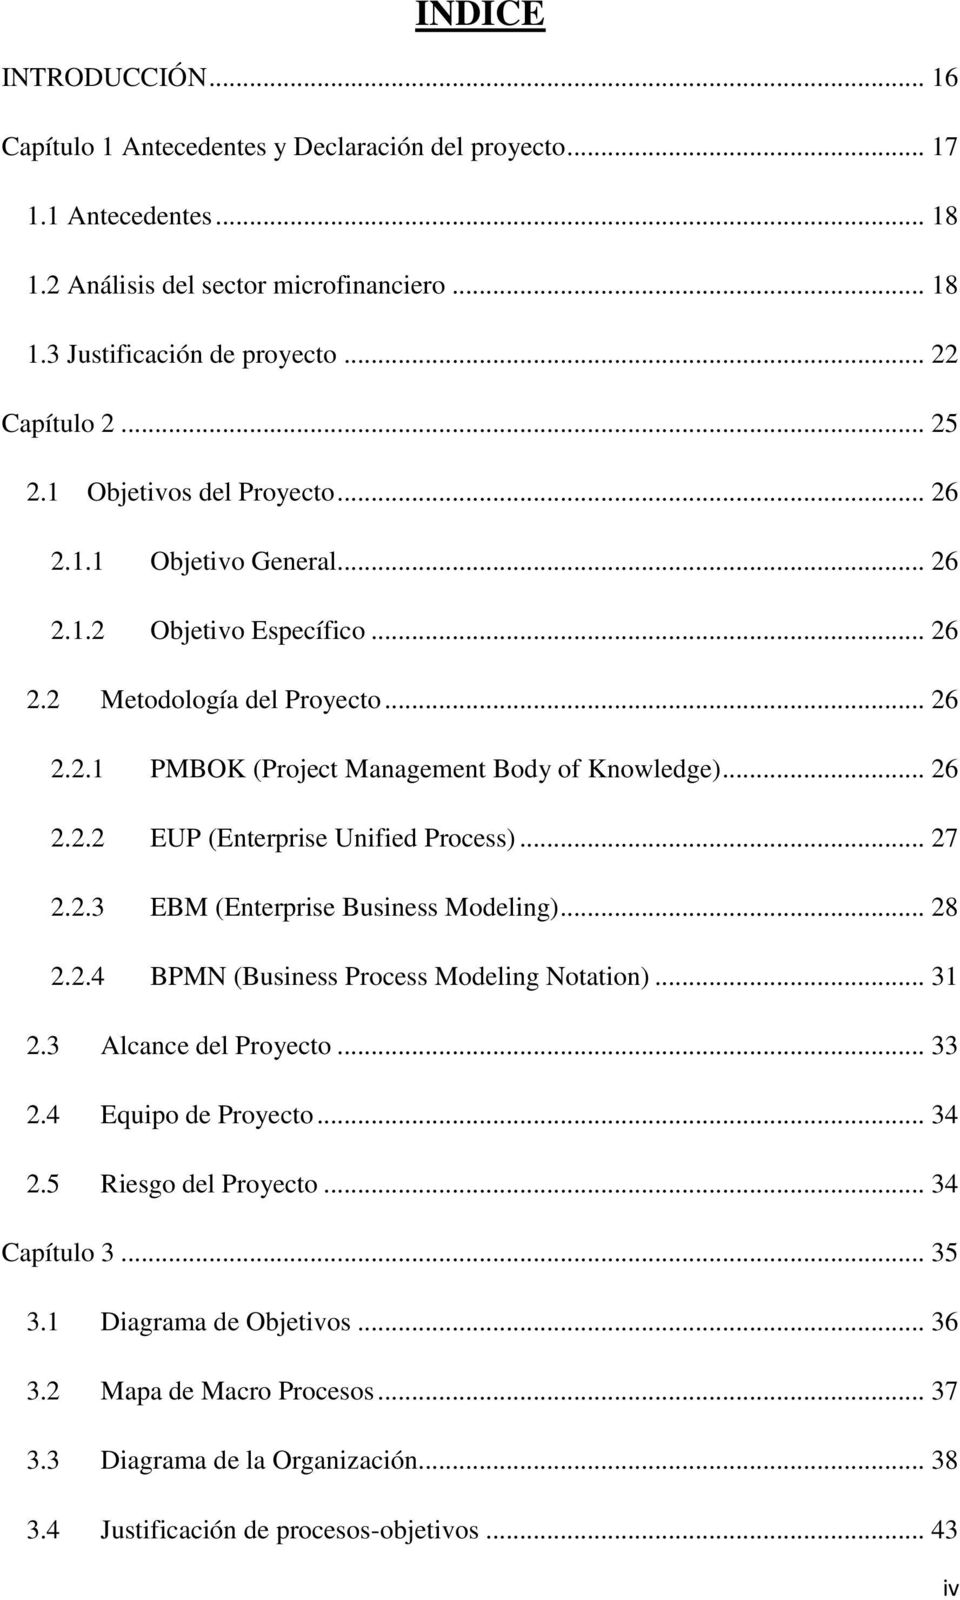 .. 27 2.2.3 EBM (Enterprise Business Modeling)... 28 2.2.4 BPMN (Business Process Modeling Notation)... 31 2.3 Alcance del Proyecto... 33 2.4 Equipo de Proyecto... 34 2.5 Riesgo del Proyecto.